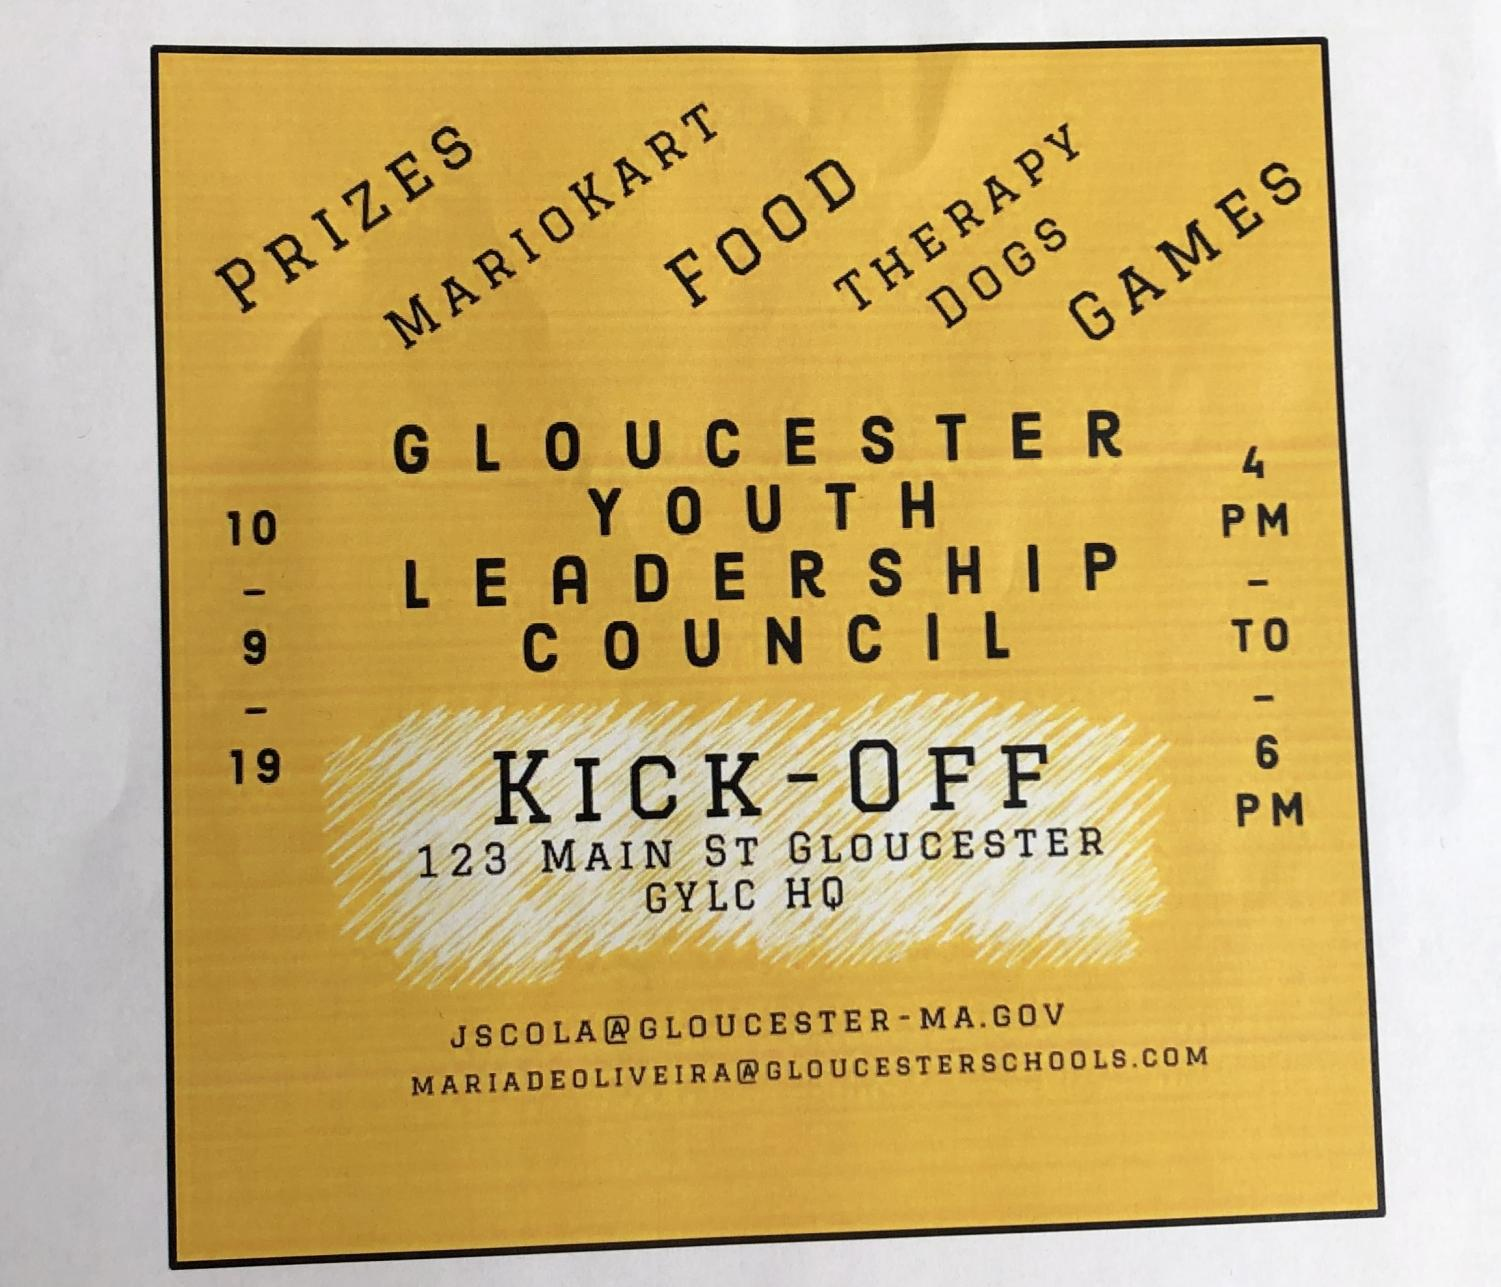 GYLC invites students to their kick-off event this Wednesday night.